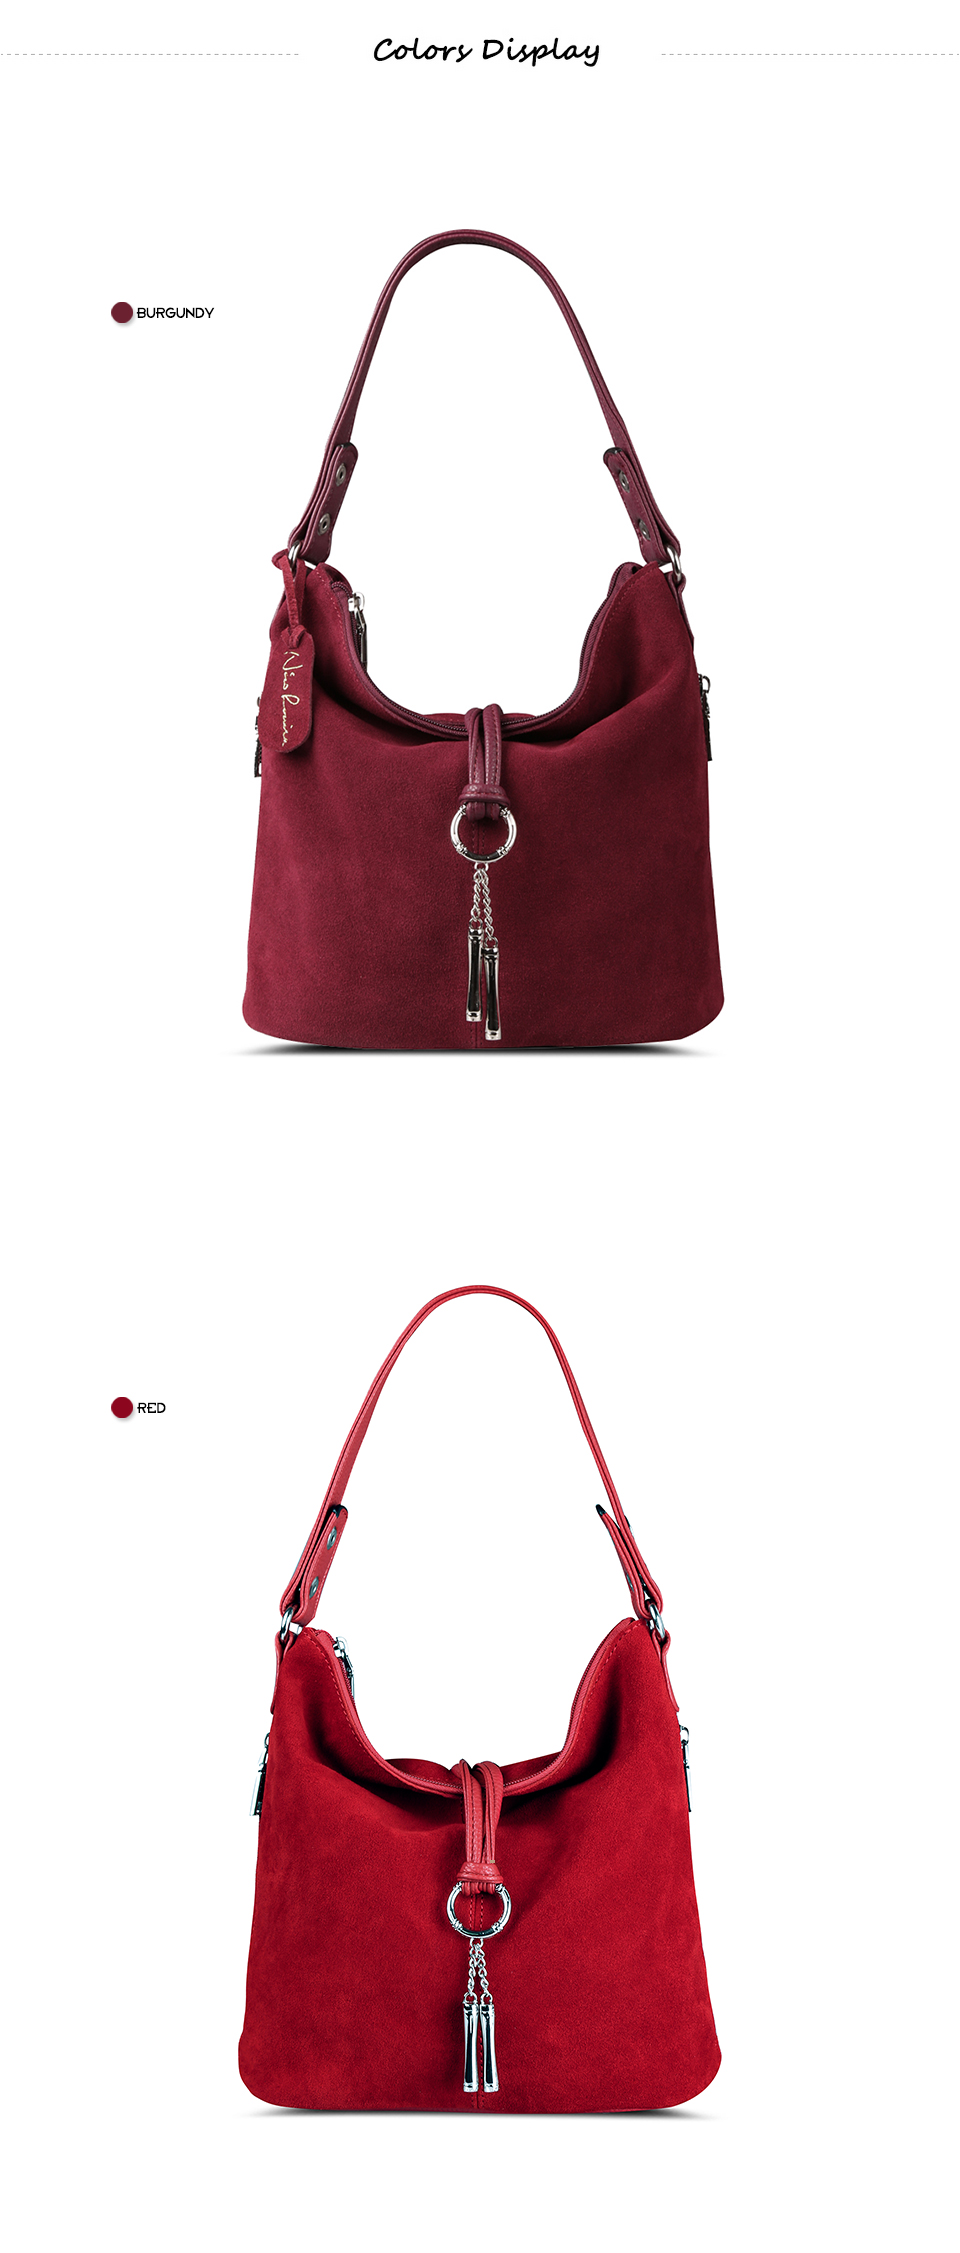 HTB1xtnUXamWQ1JjSZPhq6xCJFXaF - Fashion Women Split Leather Shoulder Bag Female Suede Casual Crossbody handbag Casual Lady Messenger Hobo Top-handle Bags